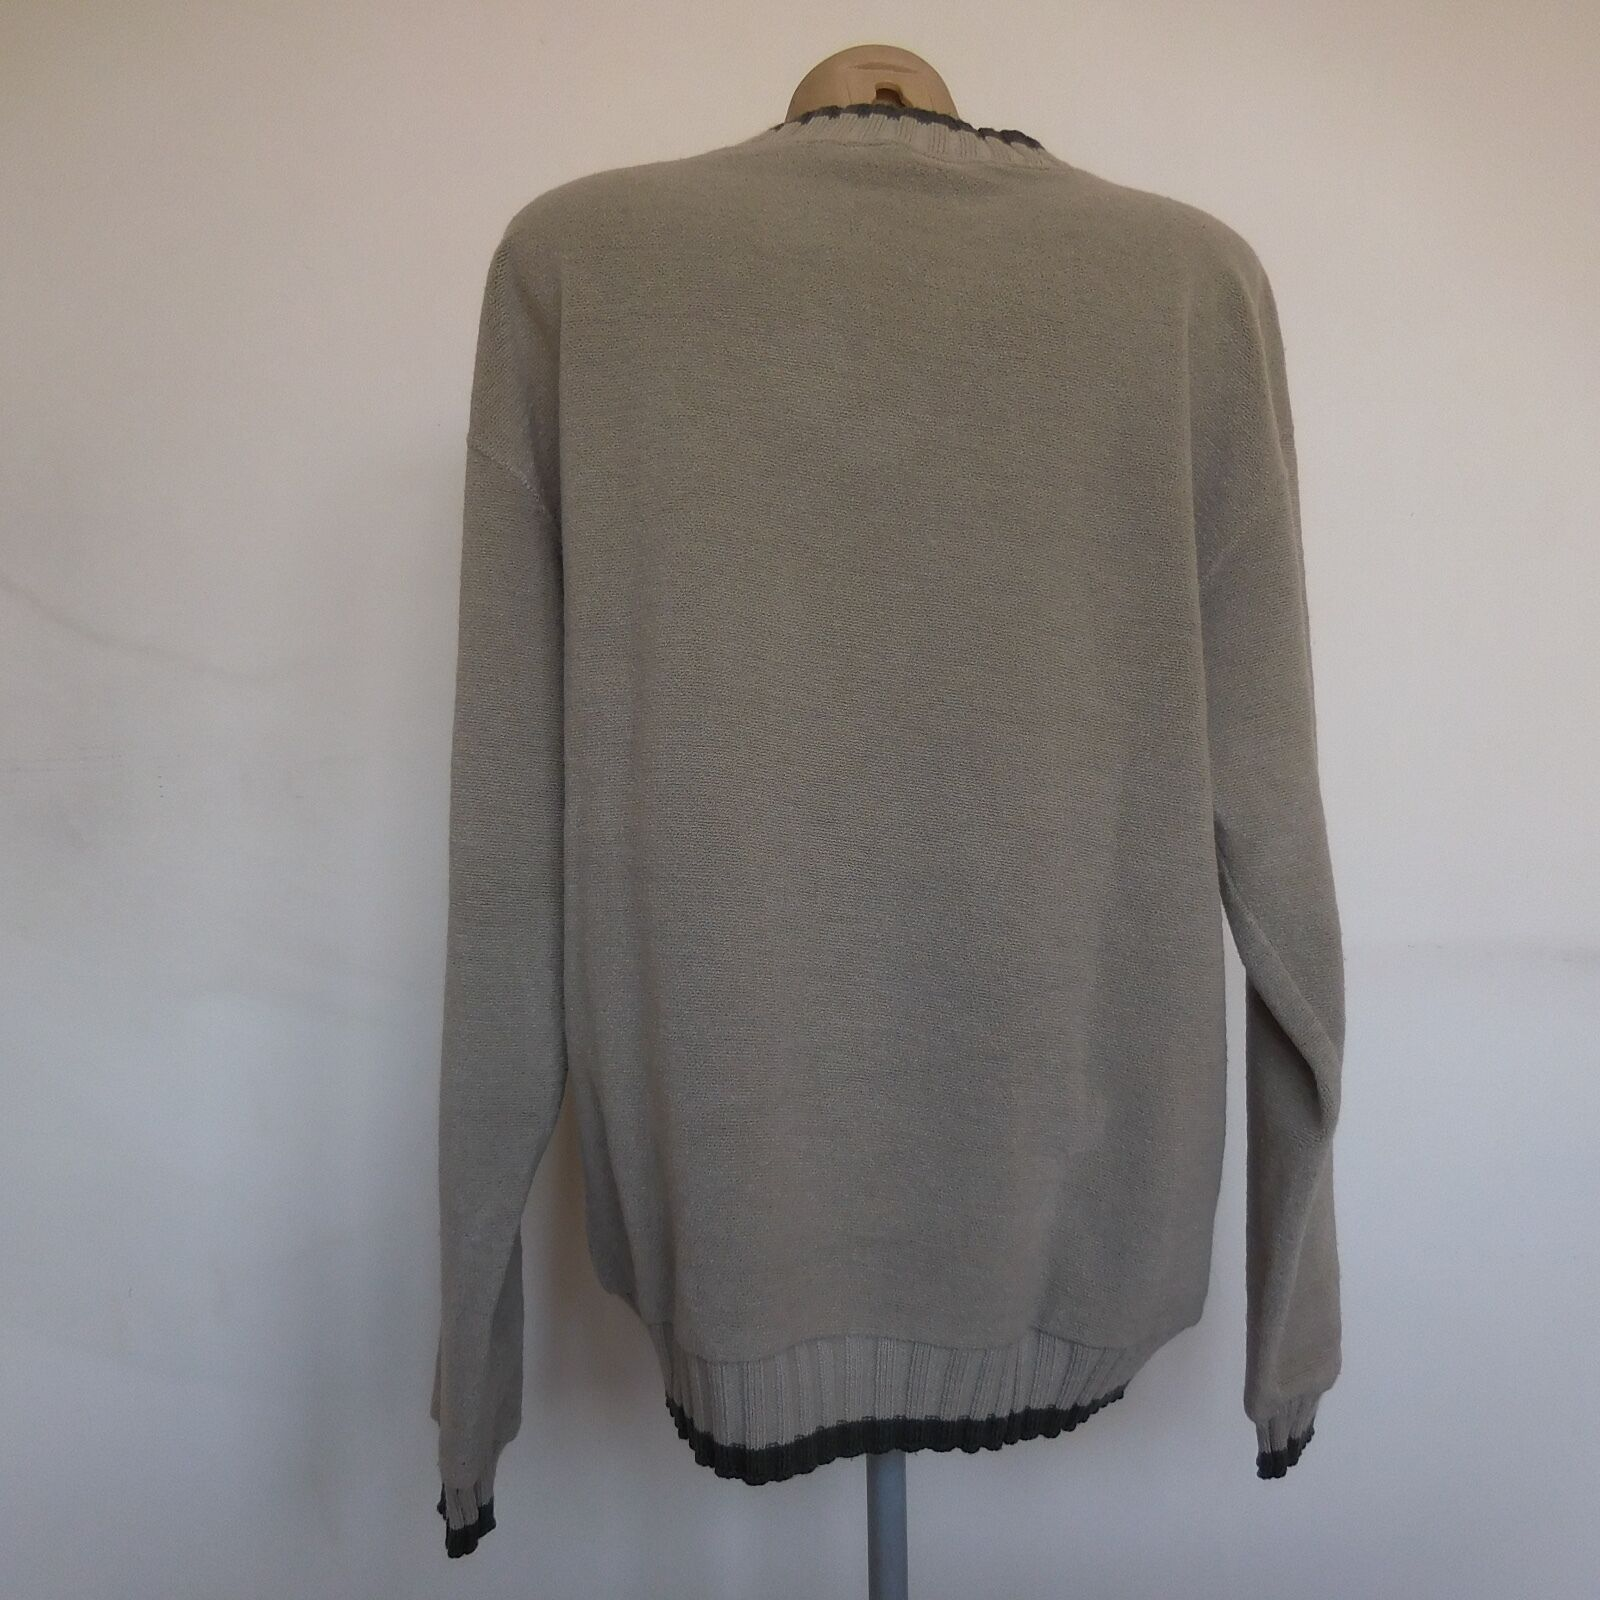 Pull SPORT BY BY BY ZARA authentique vintage MADE IN PORTUGAL 97bcf6